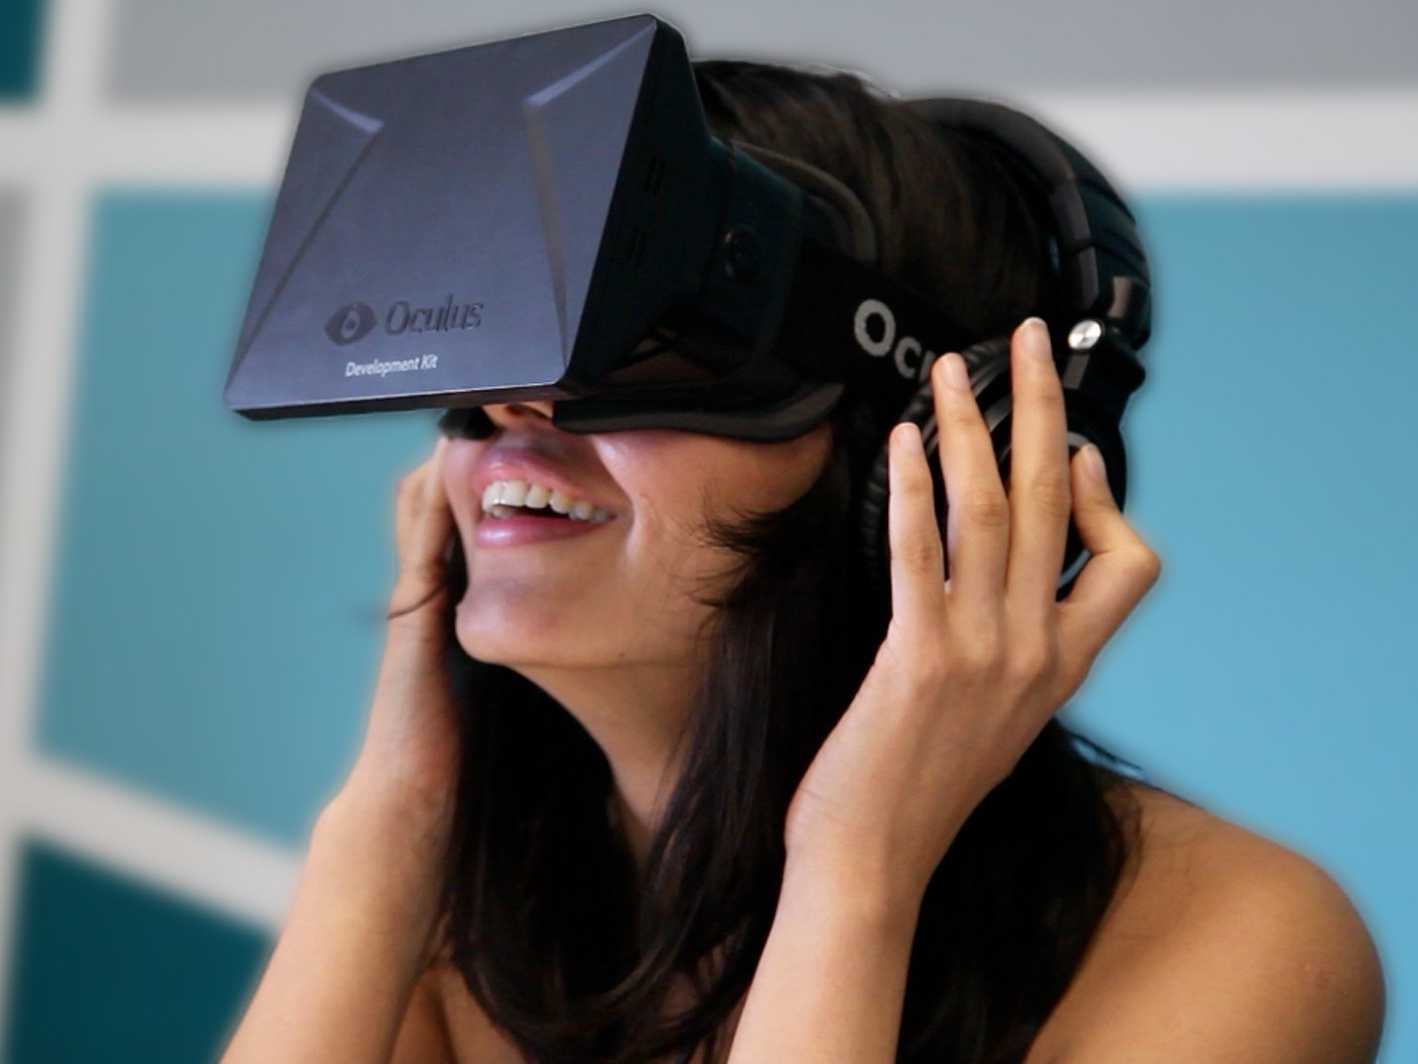 heres-what-happened-when-we-strapped-a-bunch-of-people-into-the-oculus-rift-virtual-reality-headset1.jpg